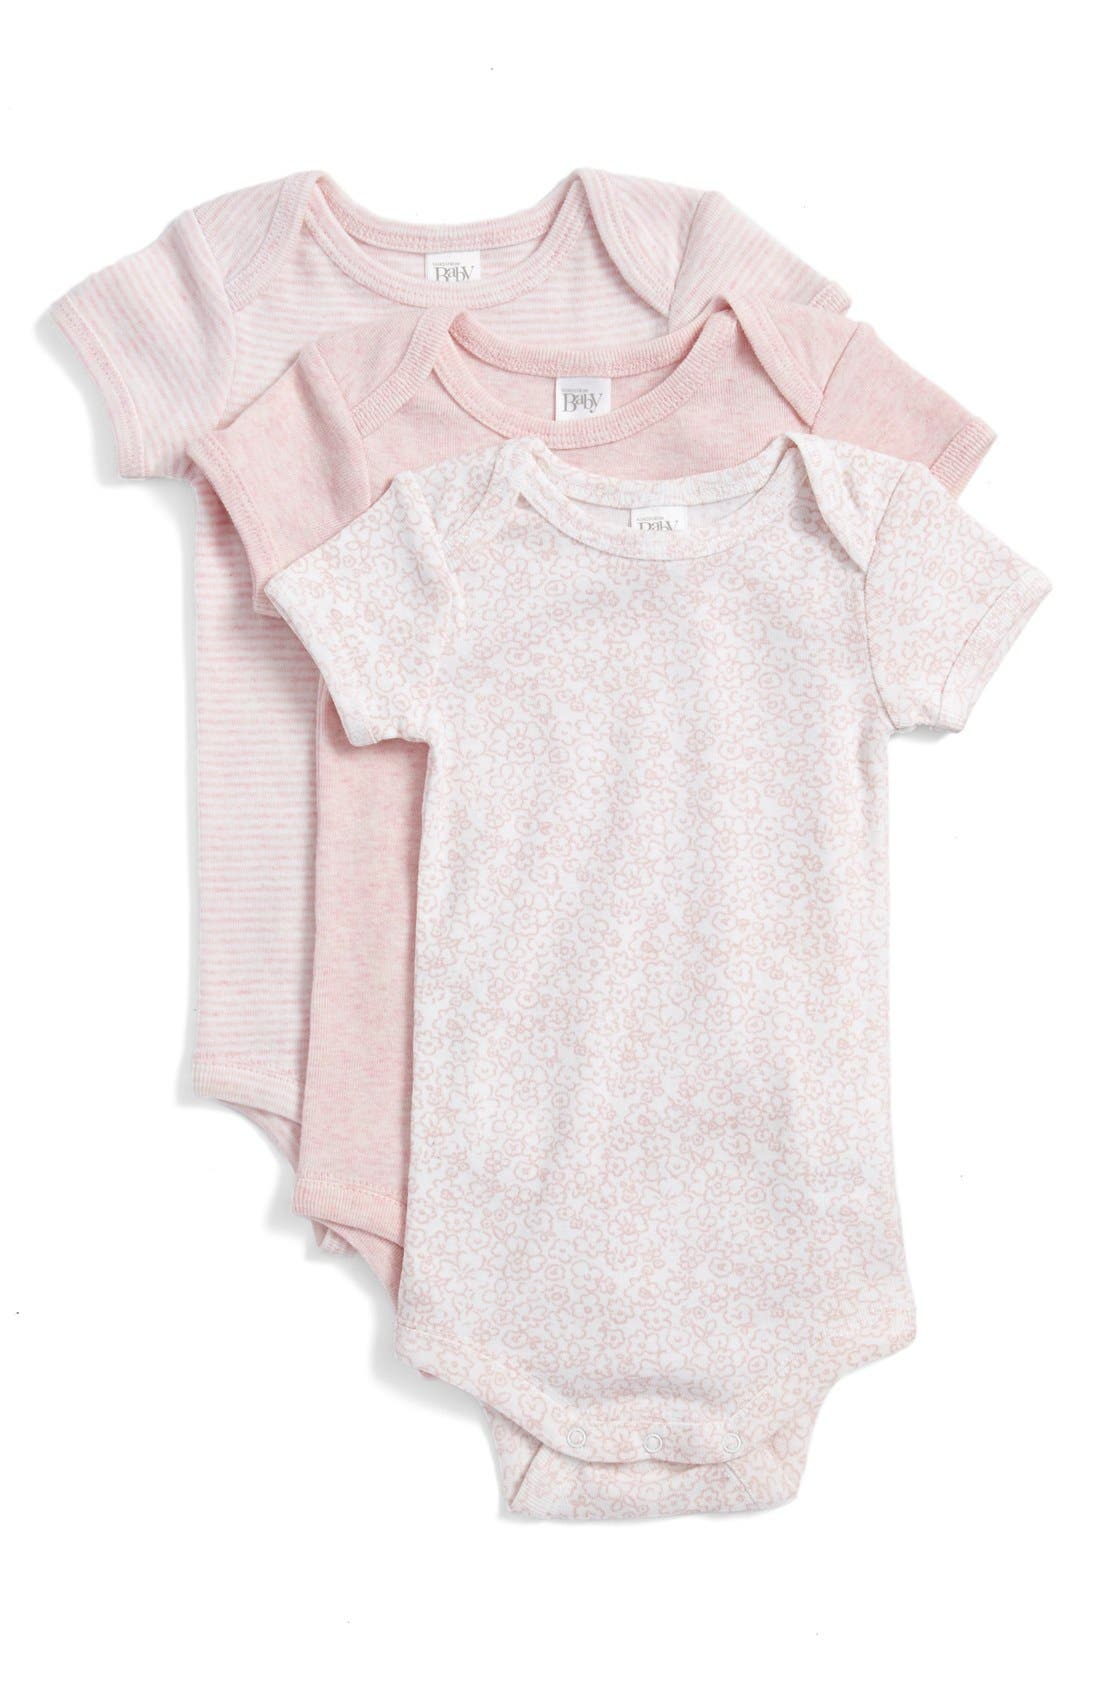 NORDSTROM BABY Short Sleeve Cotton Bodysuits, Main, color, PINK BABY PACK